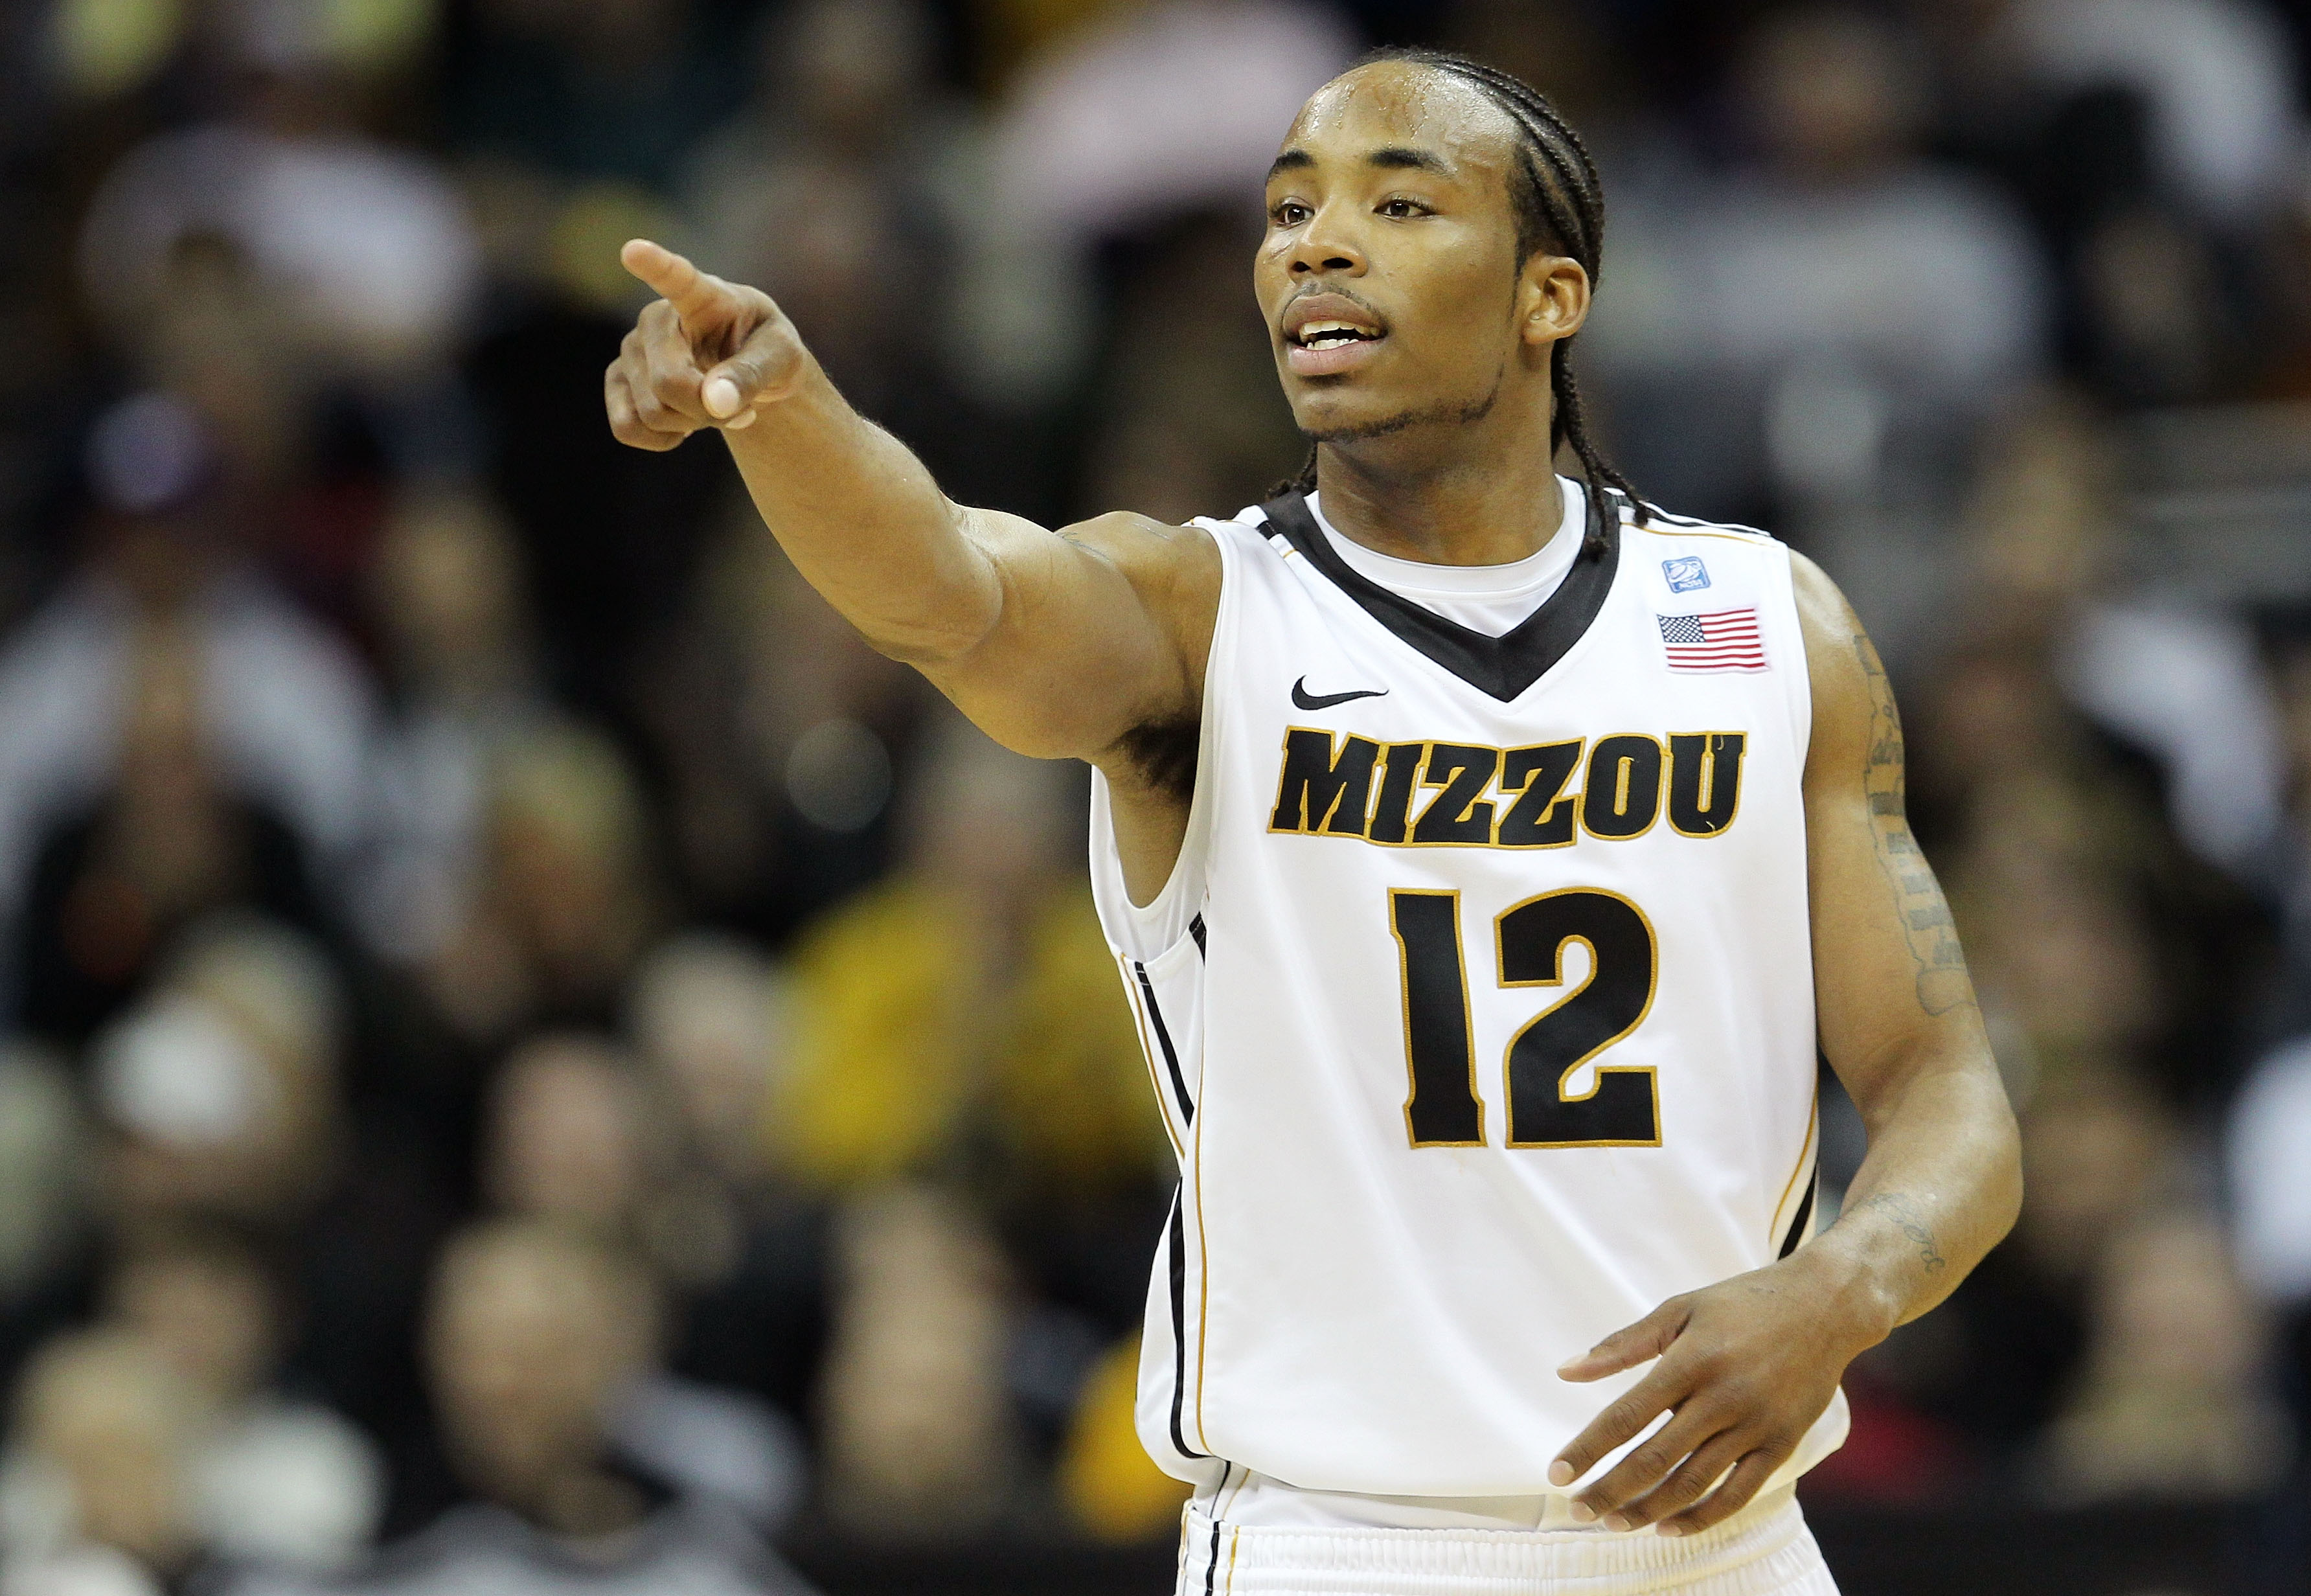 KANSAS CITY, MO - MARCH 09:  Marcus Denmon #12 of the Missouri Tigers signals against the Texas Tech Red Raiders during their first round game in the 2011 Phillips 66 Big 12 Men's Basketball Tournament at Sprint Center on March 9, 2011 in Kansas City, Mis